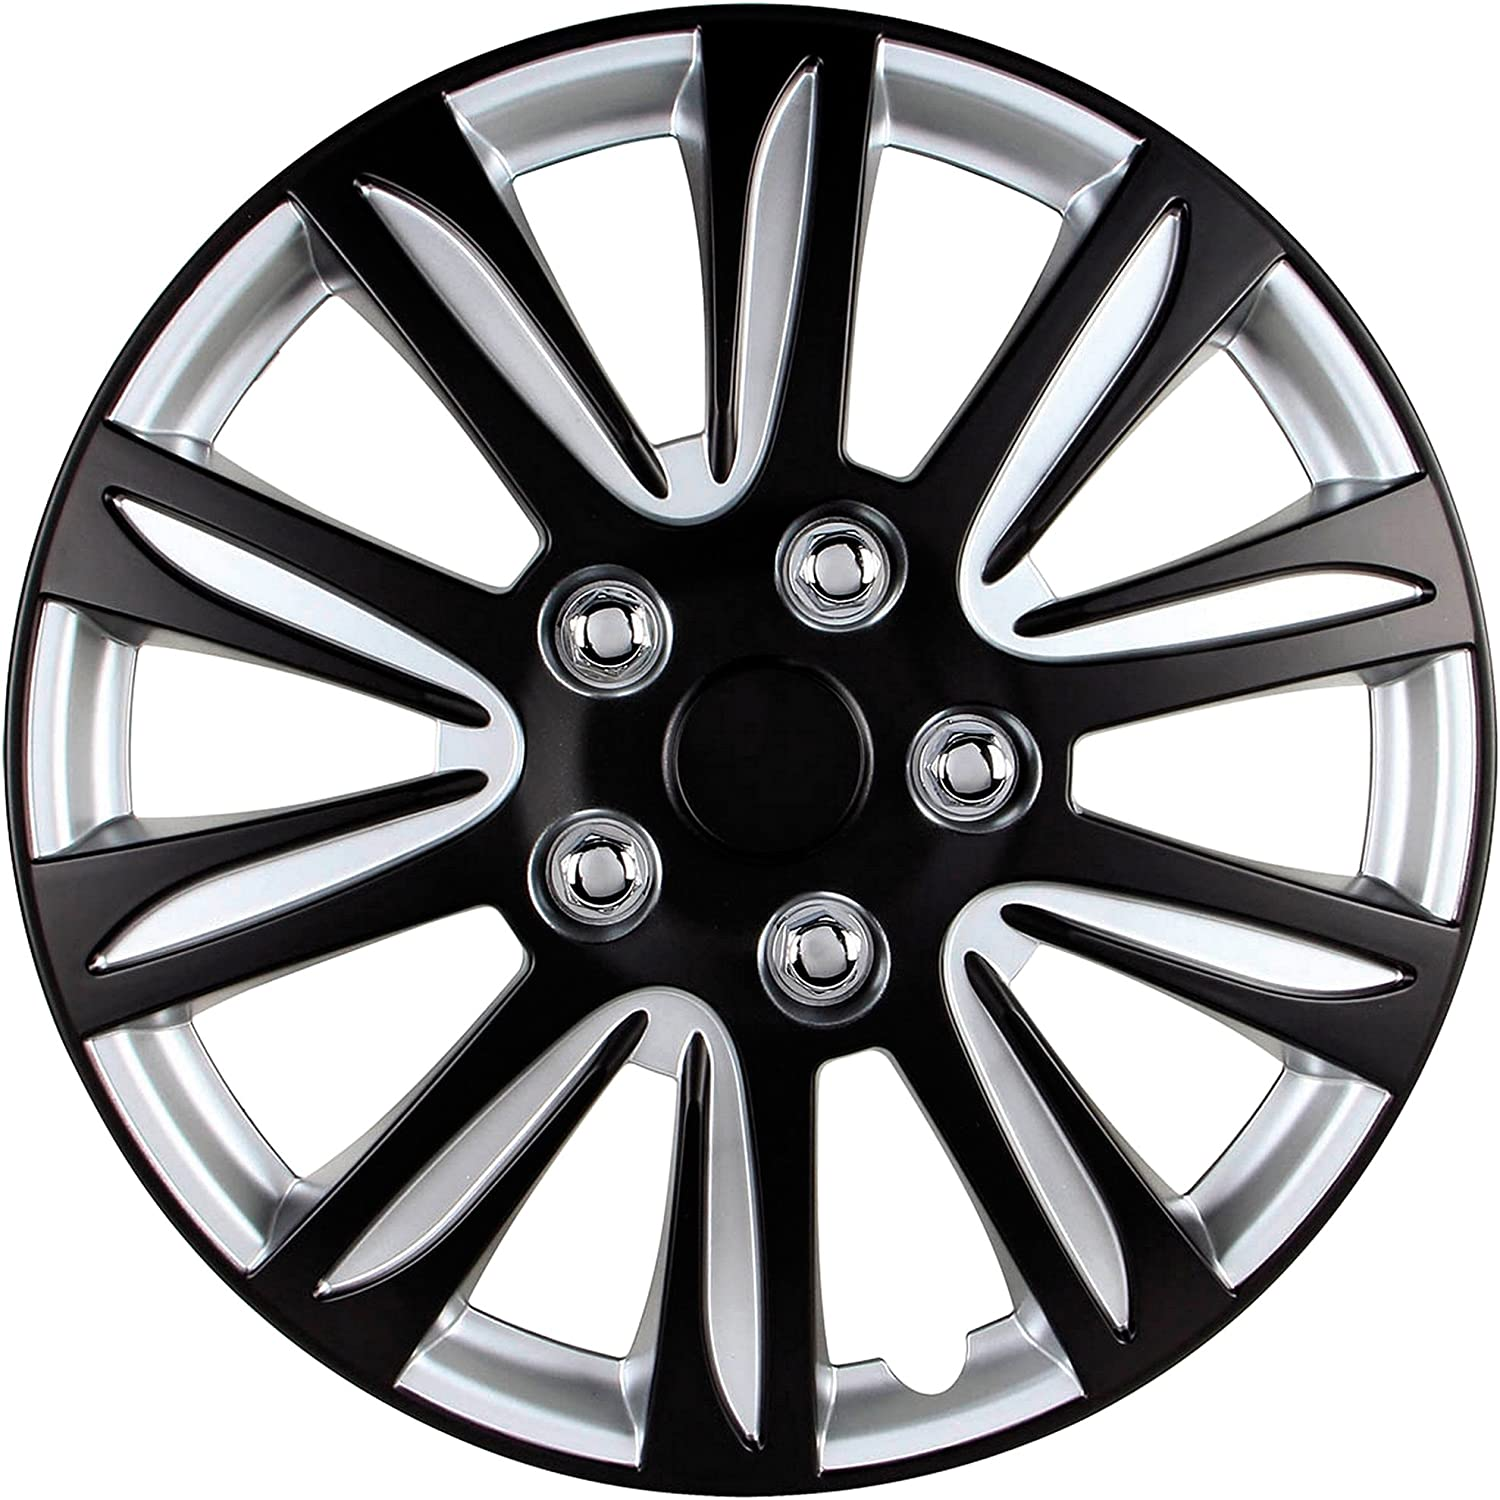 Marina Bay Set of 4 15 inch Hubcaps Easy to Install Universal Fitment 15 Black and Silver